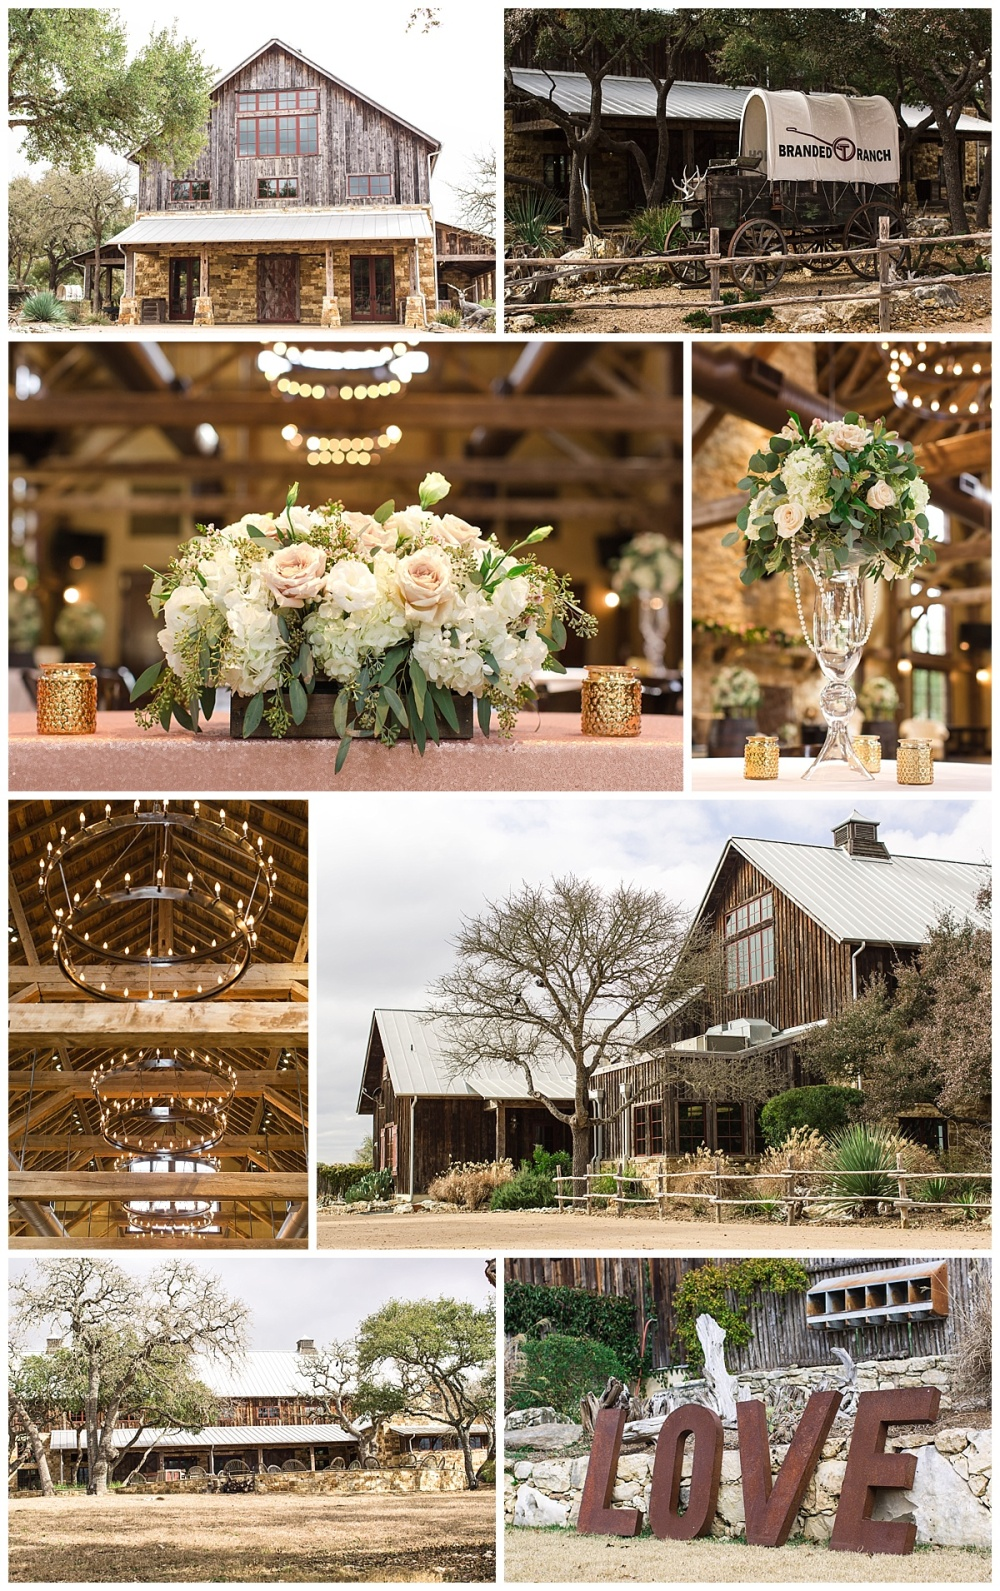 Carly-Barton-Photography-Branded-T-Ranch-Kendalia-Texas-Hill-Country-Wedding_0001.jpg